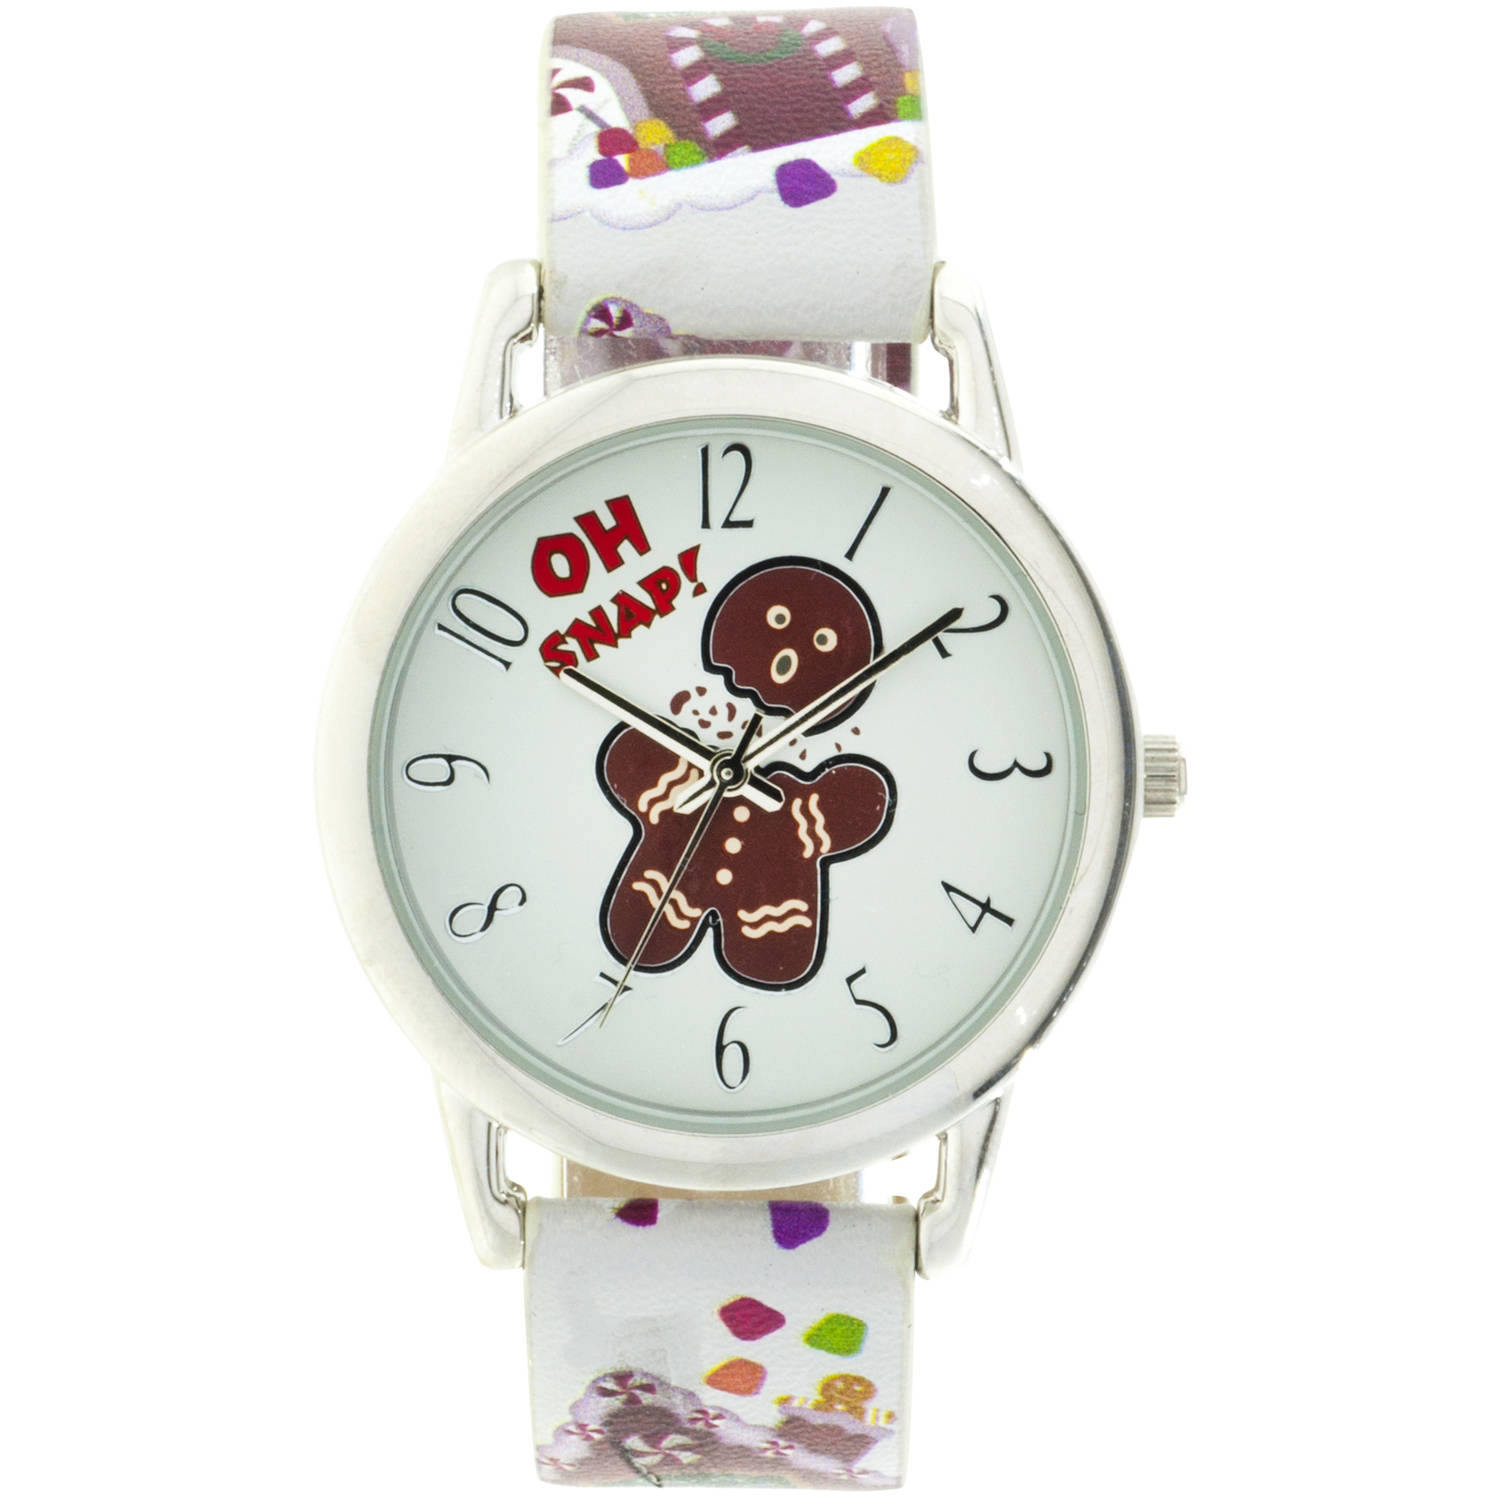 """""""Oh Snap"""" Gingerbread Man Round Silver Ugly Christmas Watch,Multi-Color Candy Cane Strap"""